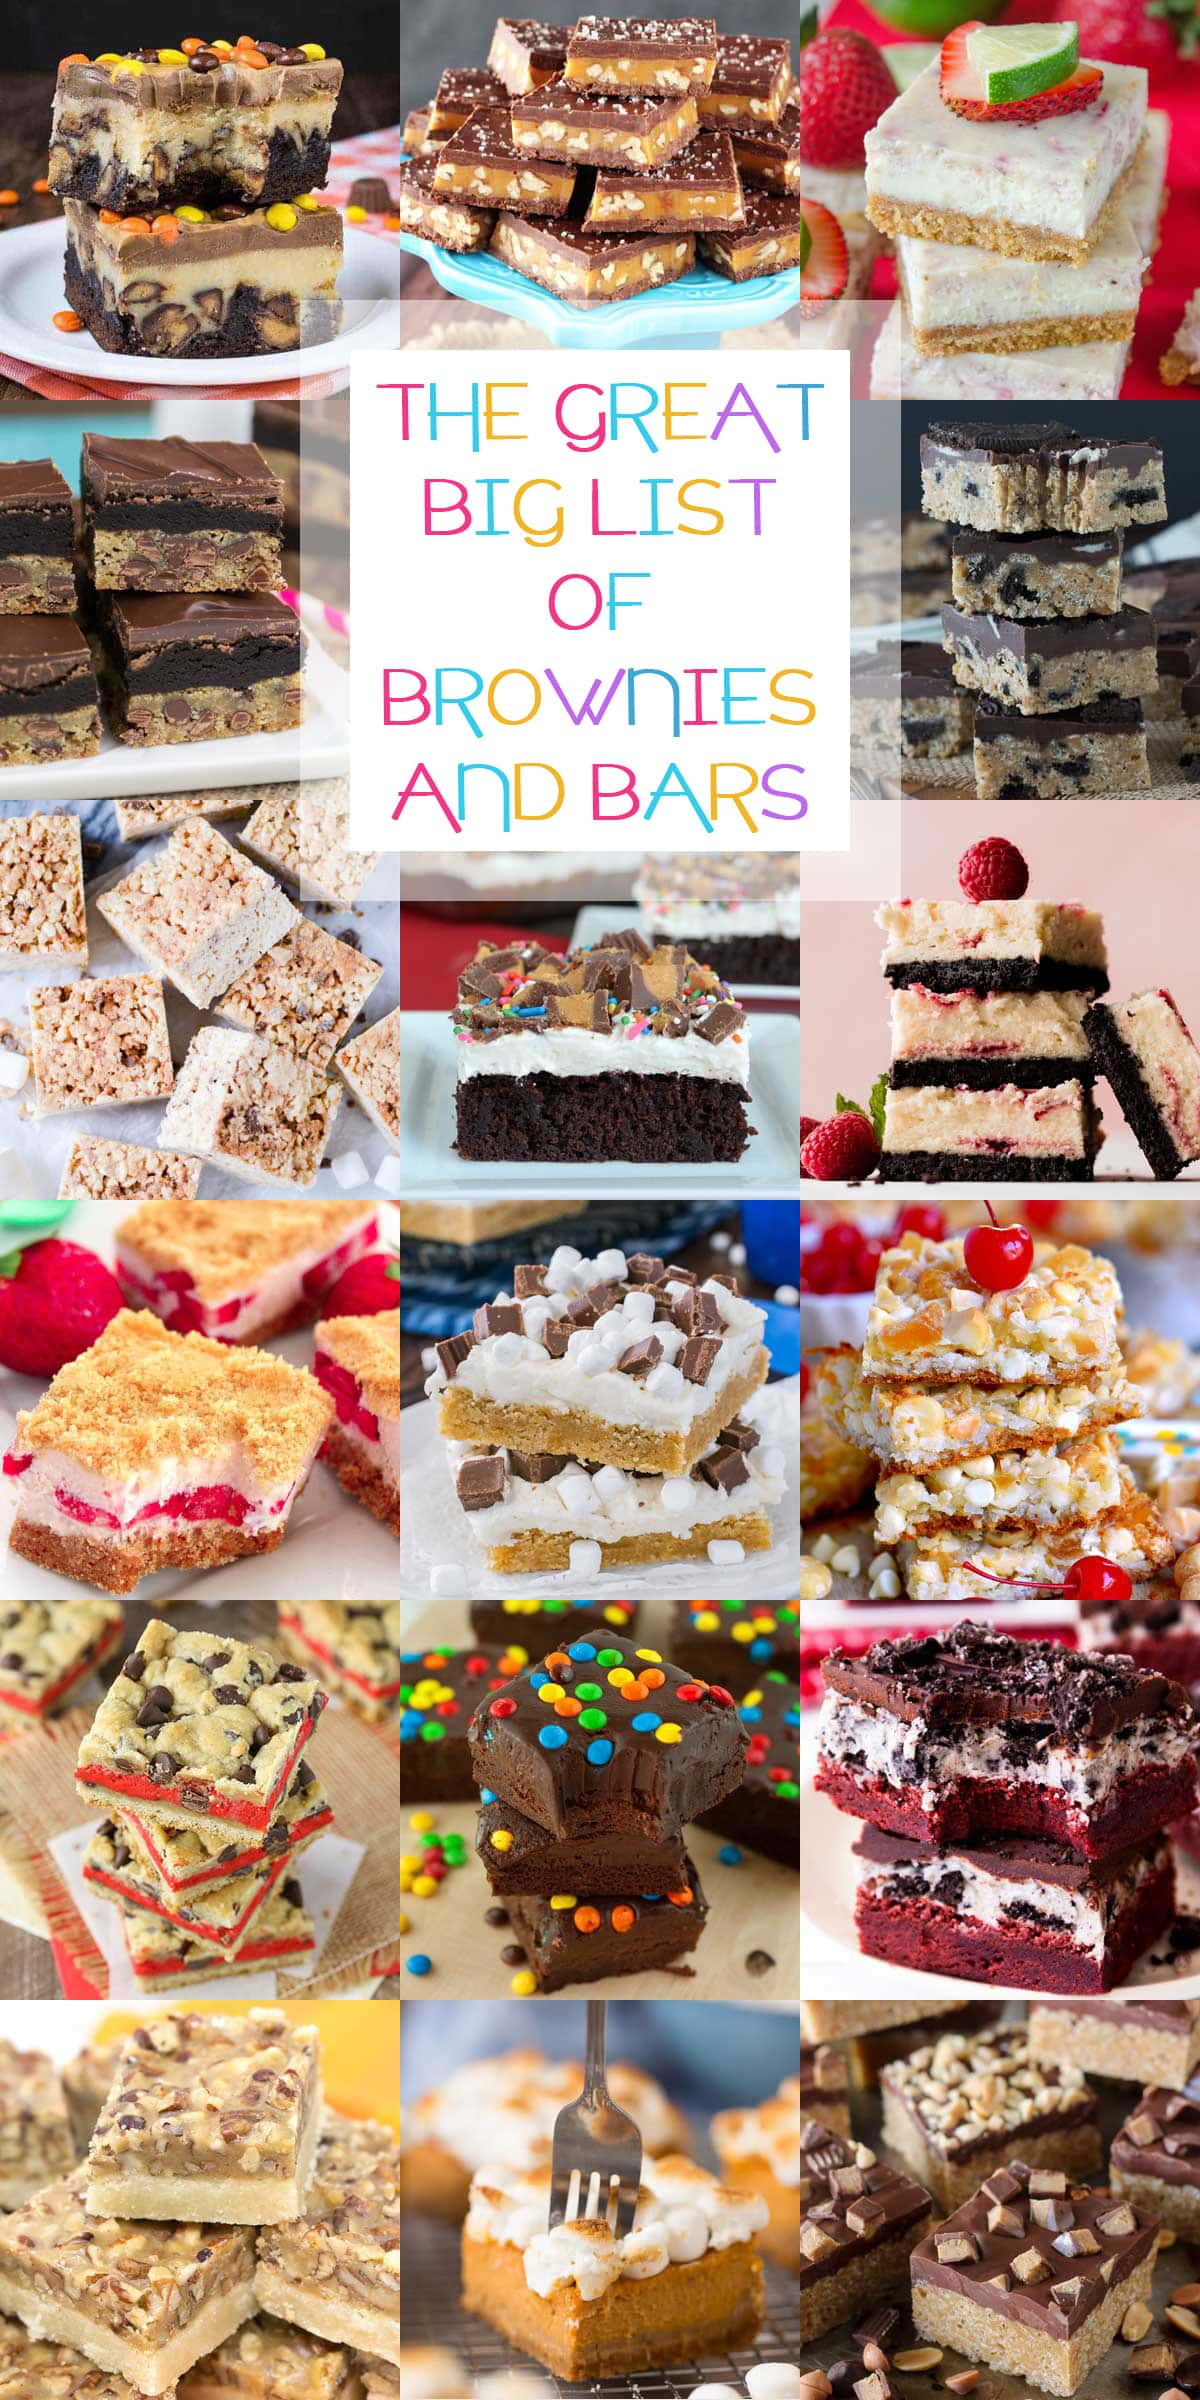 The Great Big List of Brownies and Bars - a mesmerizing and scrumptious sweet collection of 150+ brownies, blondies, and dessert bars from your favorite food bloggers; a rock-in' recipe roundup.